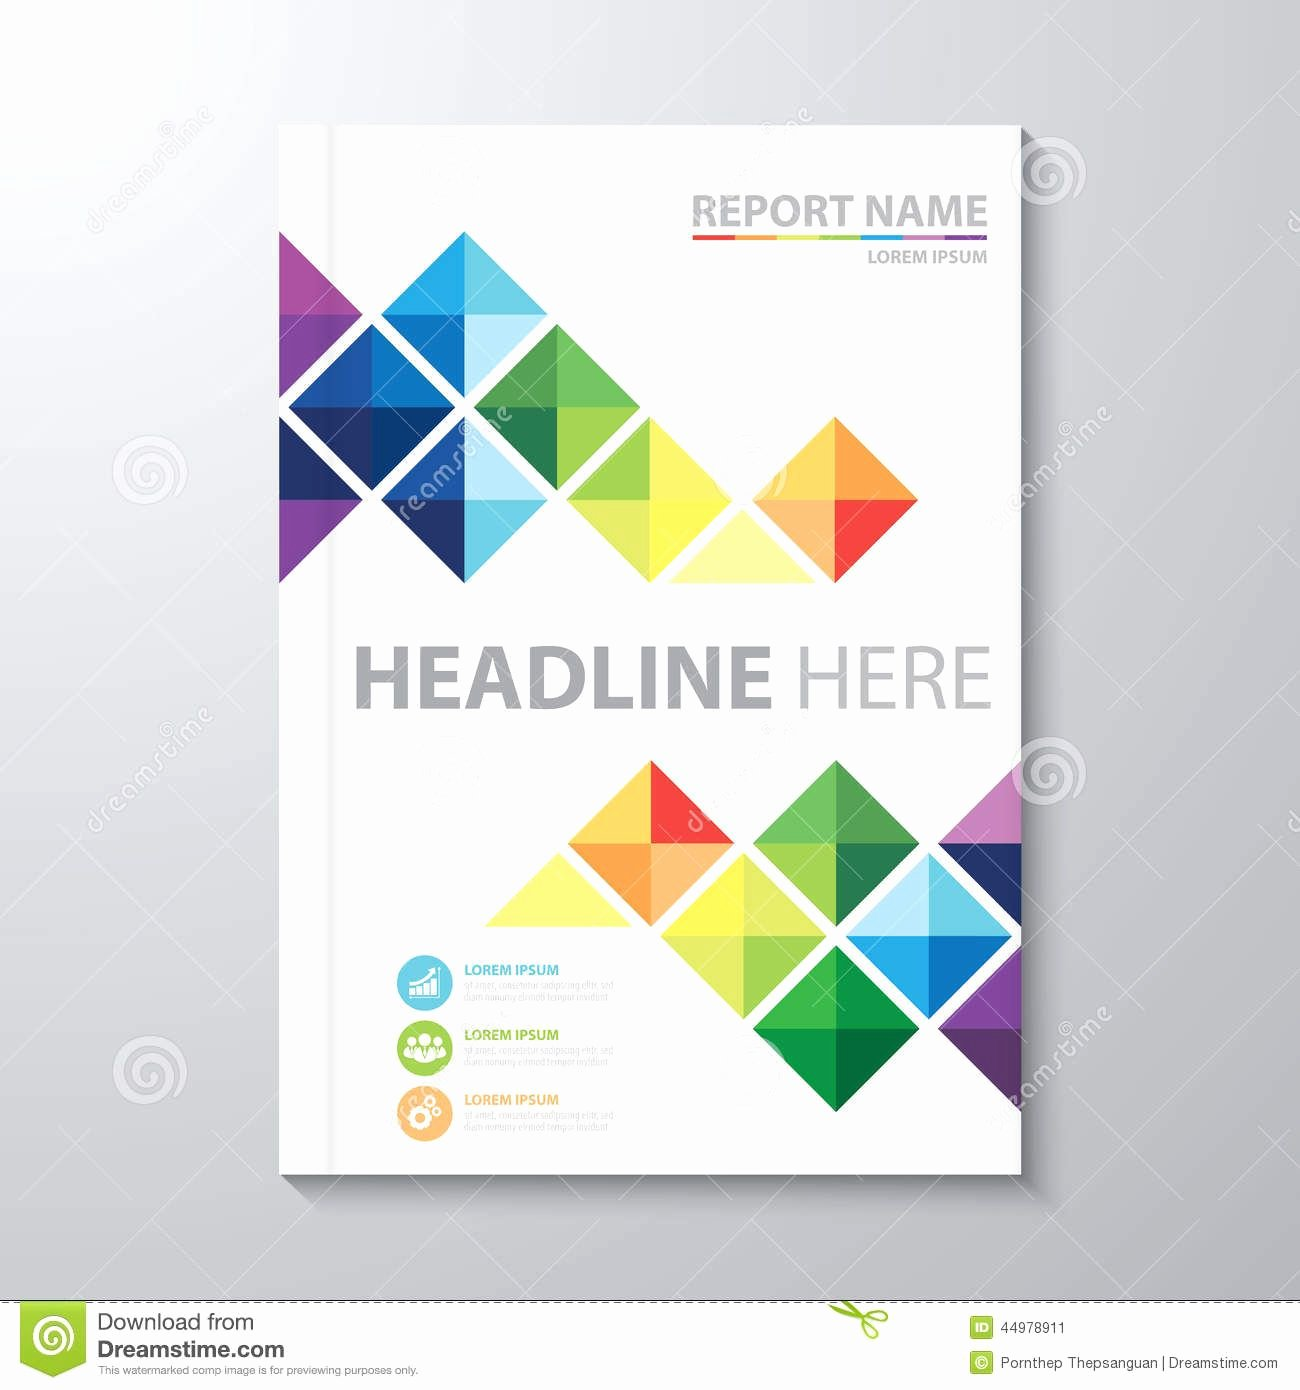 Report Cover Page Template Unique Annual Report Cover Design Template Cover